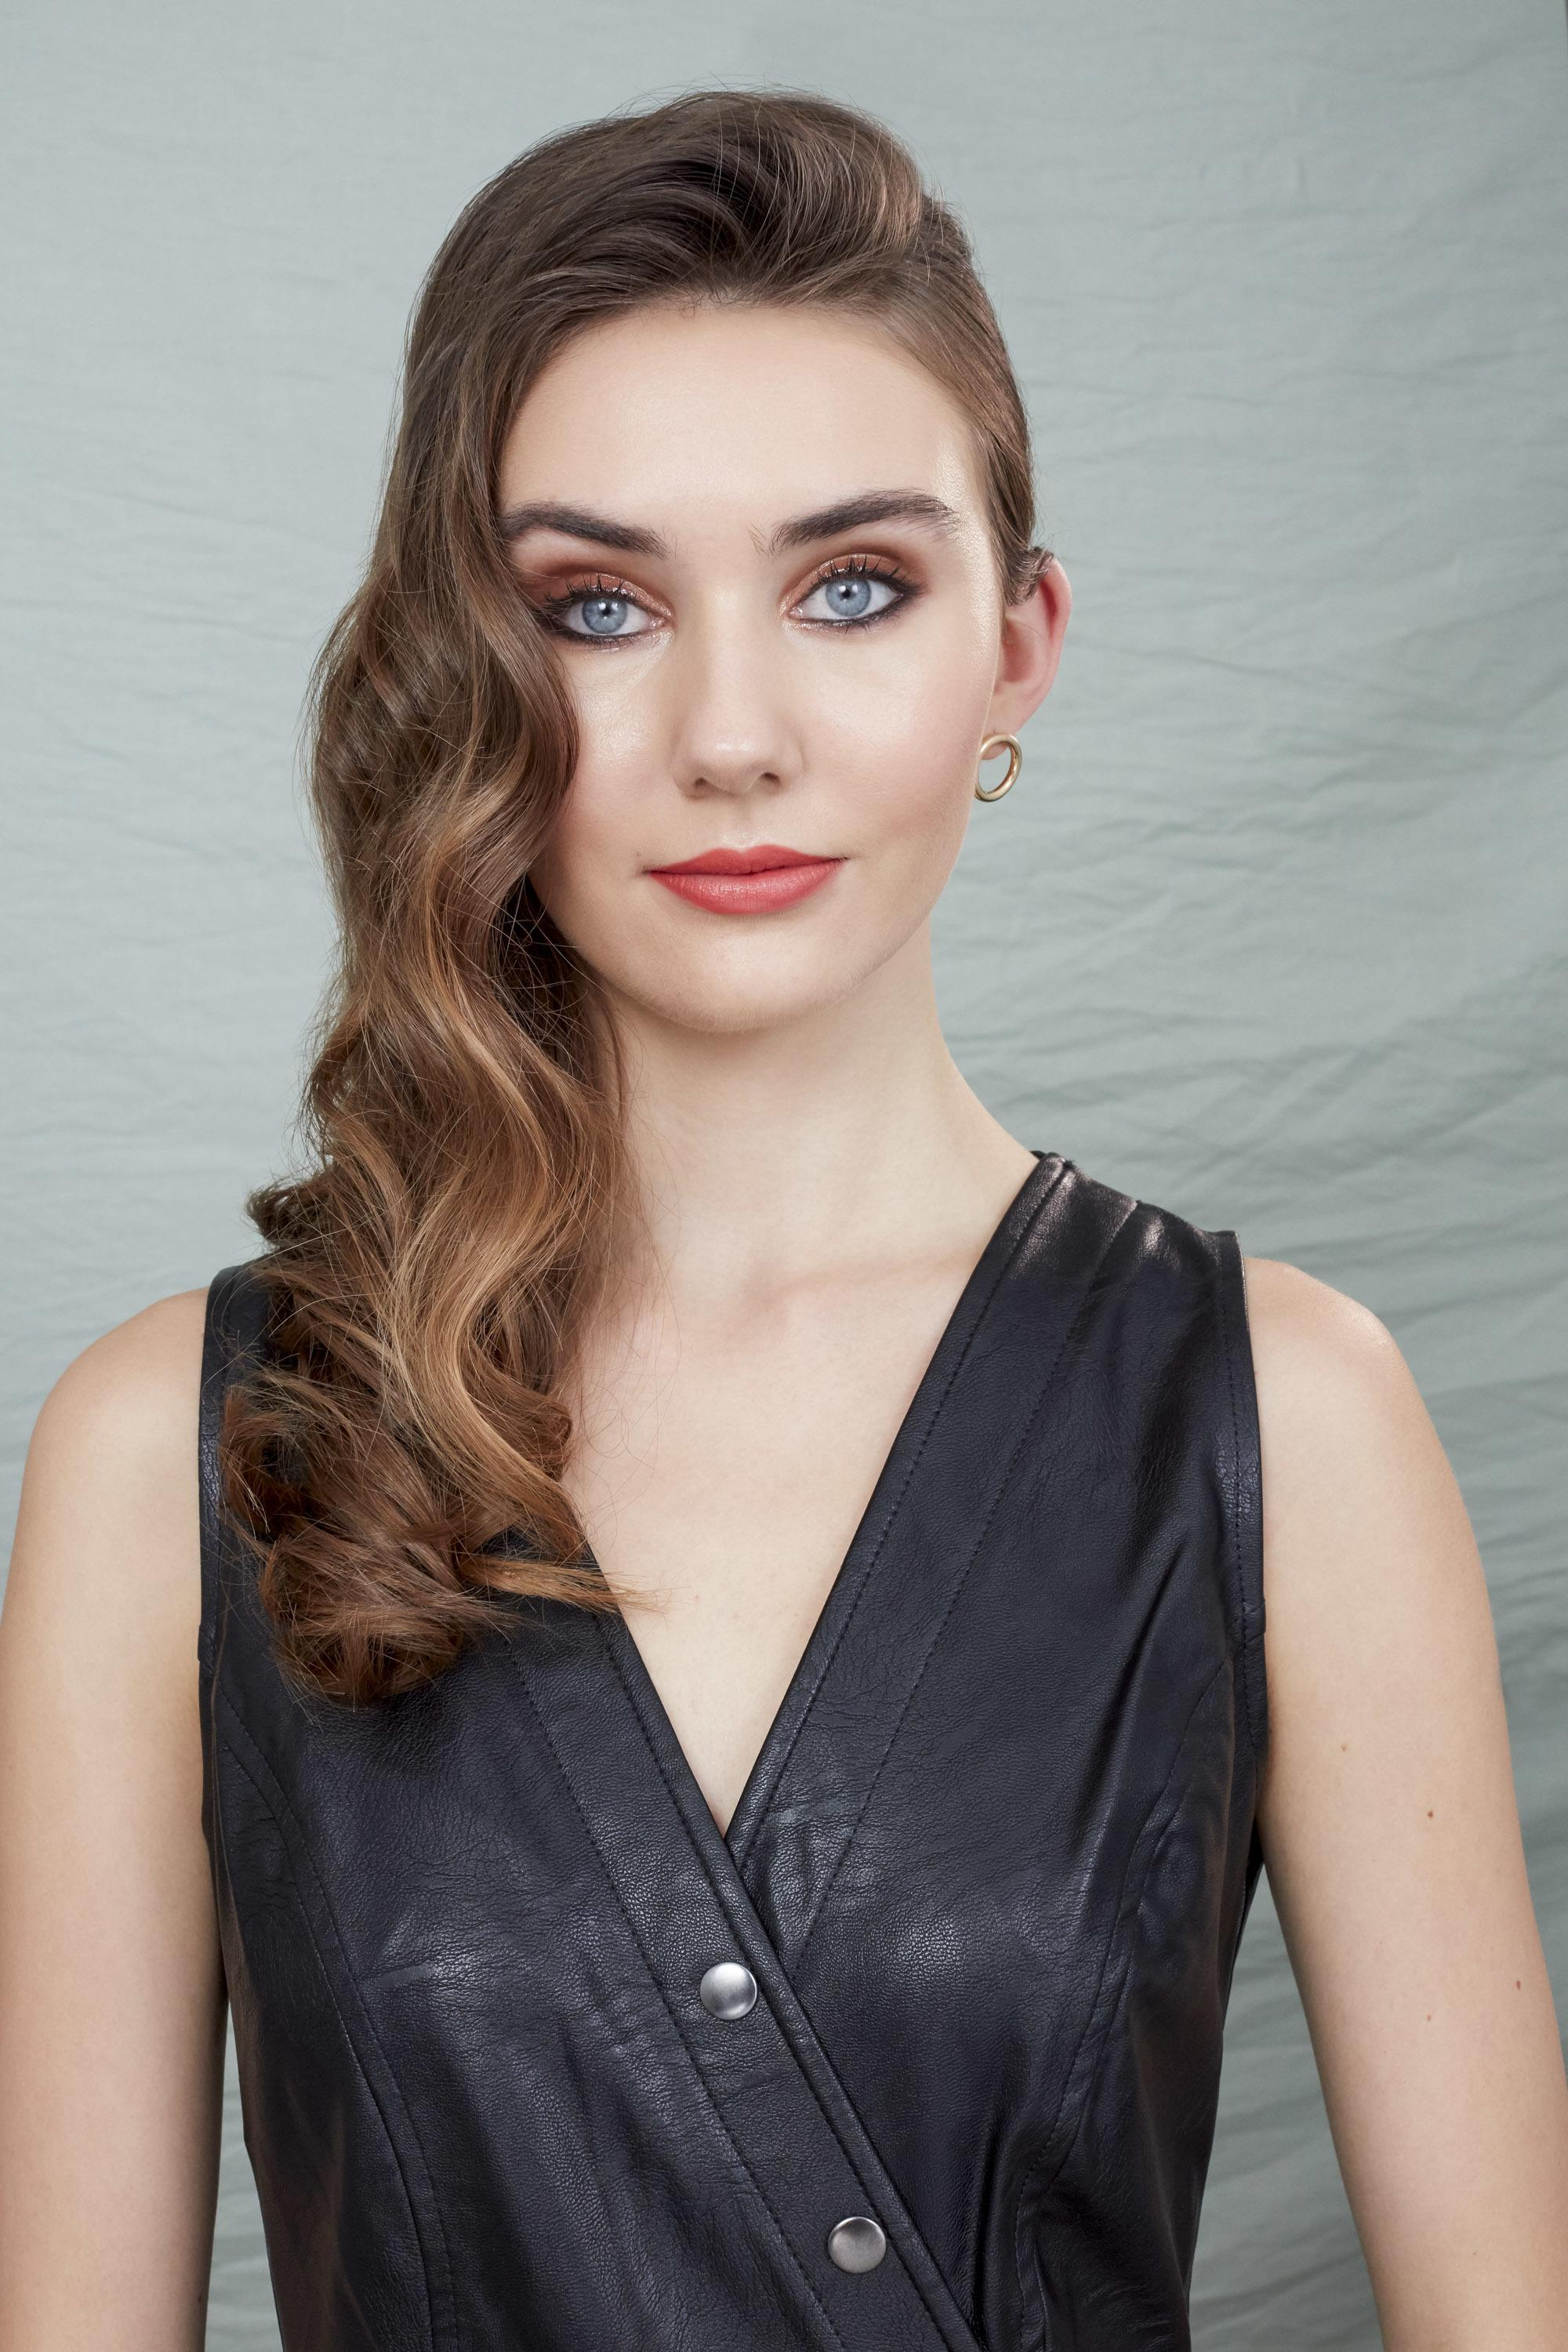 Brunette model with side-swept Hollywood glam waves, wearing a black leather dress